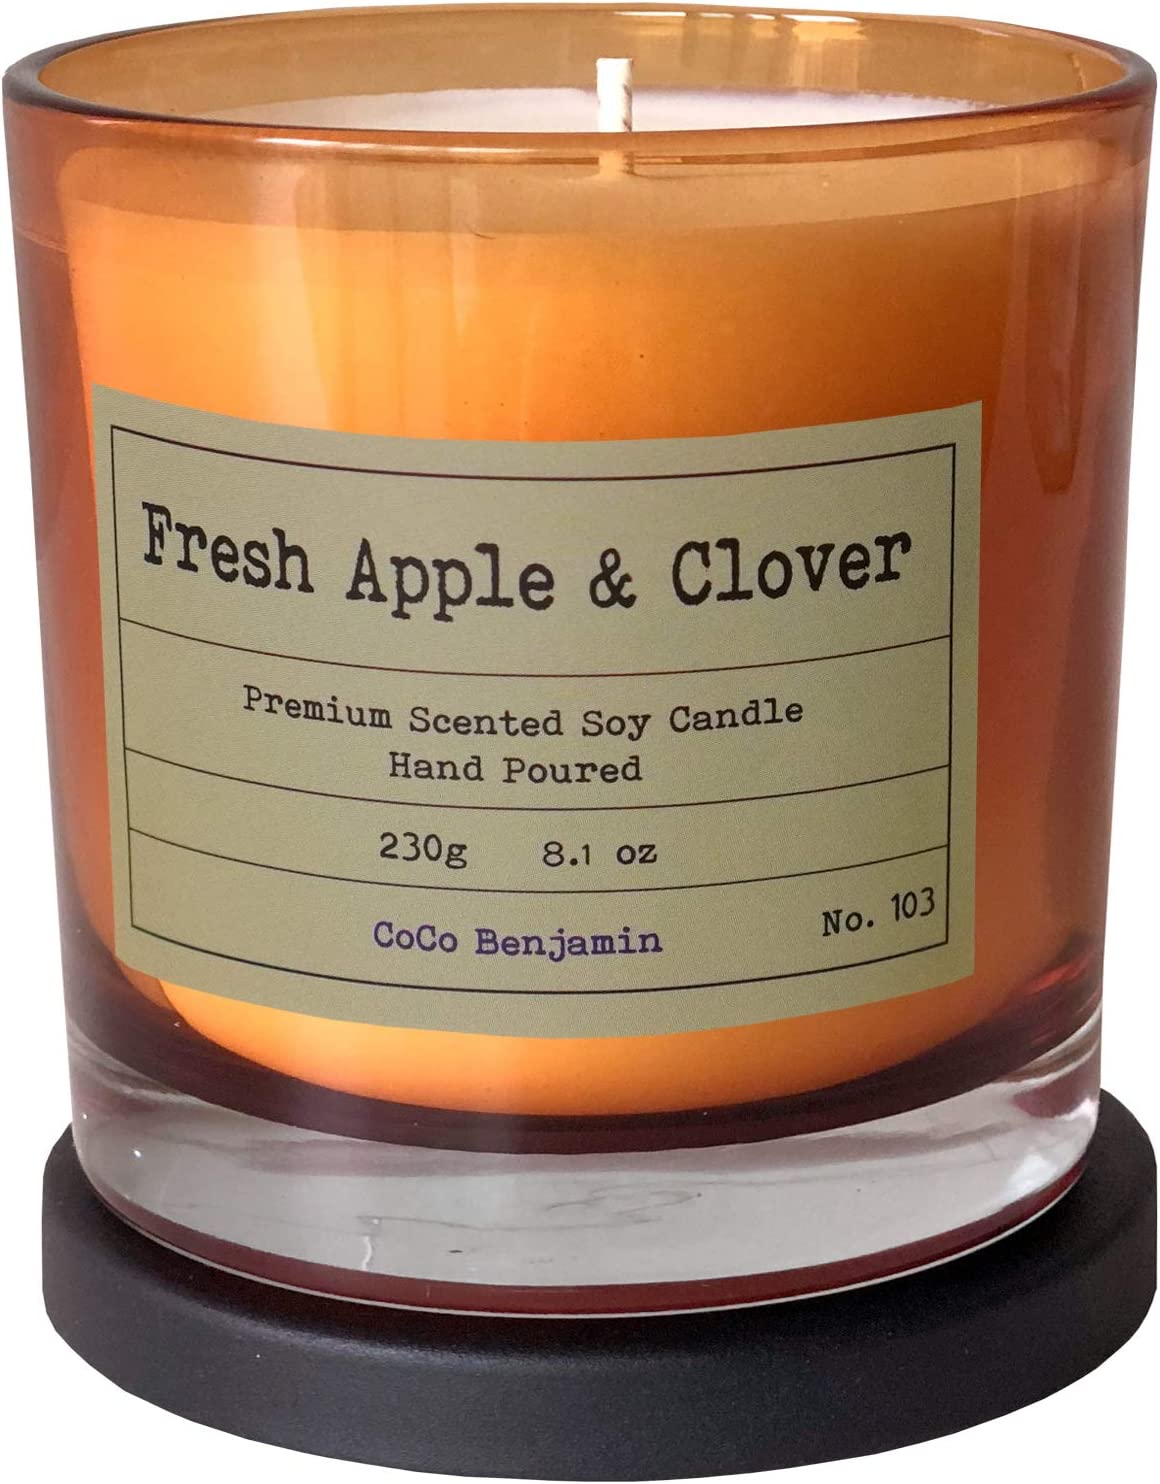 Soy Candle , Highly Scented, Hand Poured, 8.1 oz (Fresh Apple & Clover)